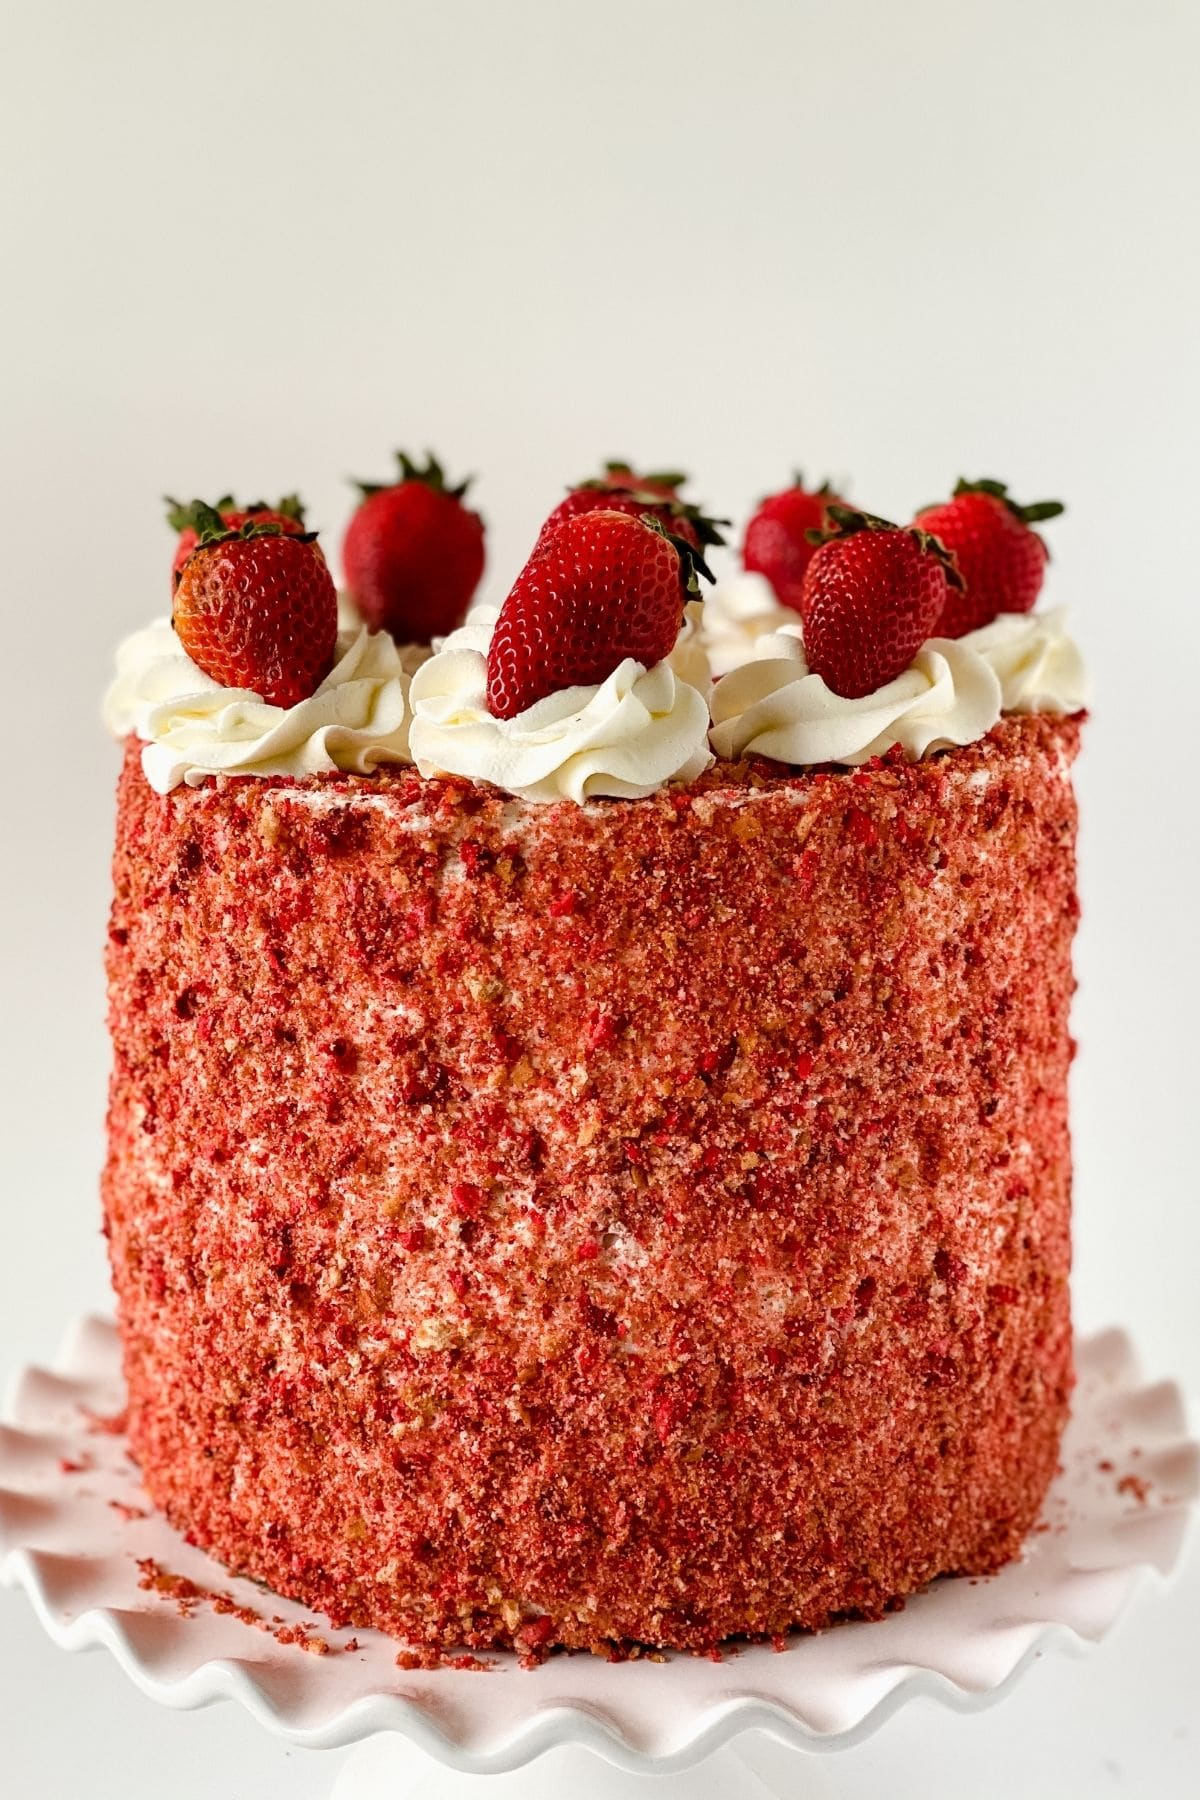 Strawberry crunch cake on white cake stand with berries on top